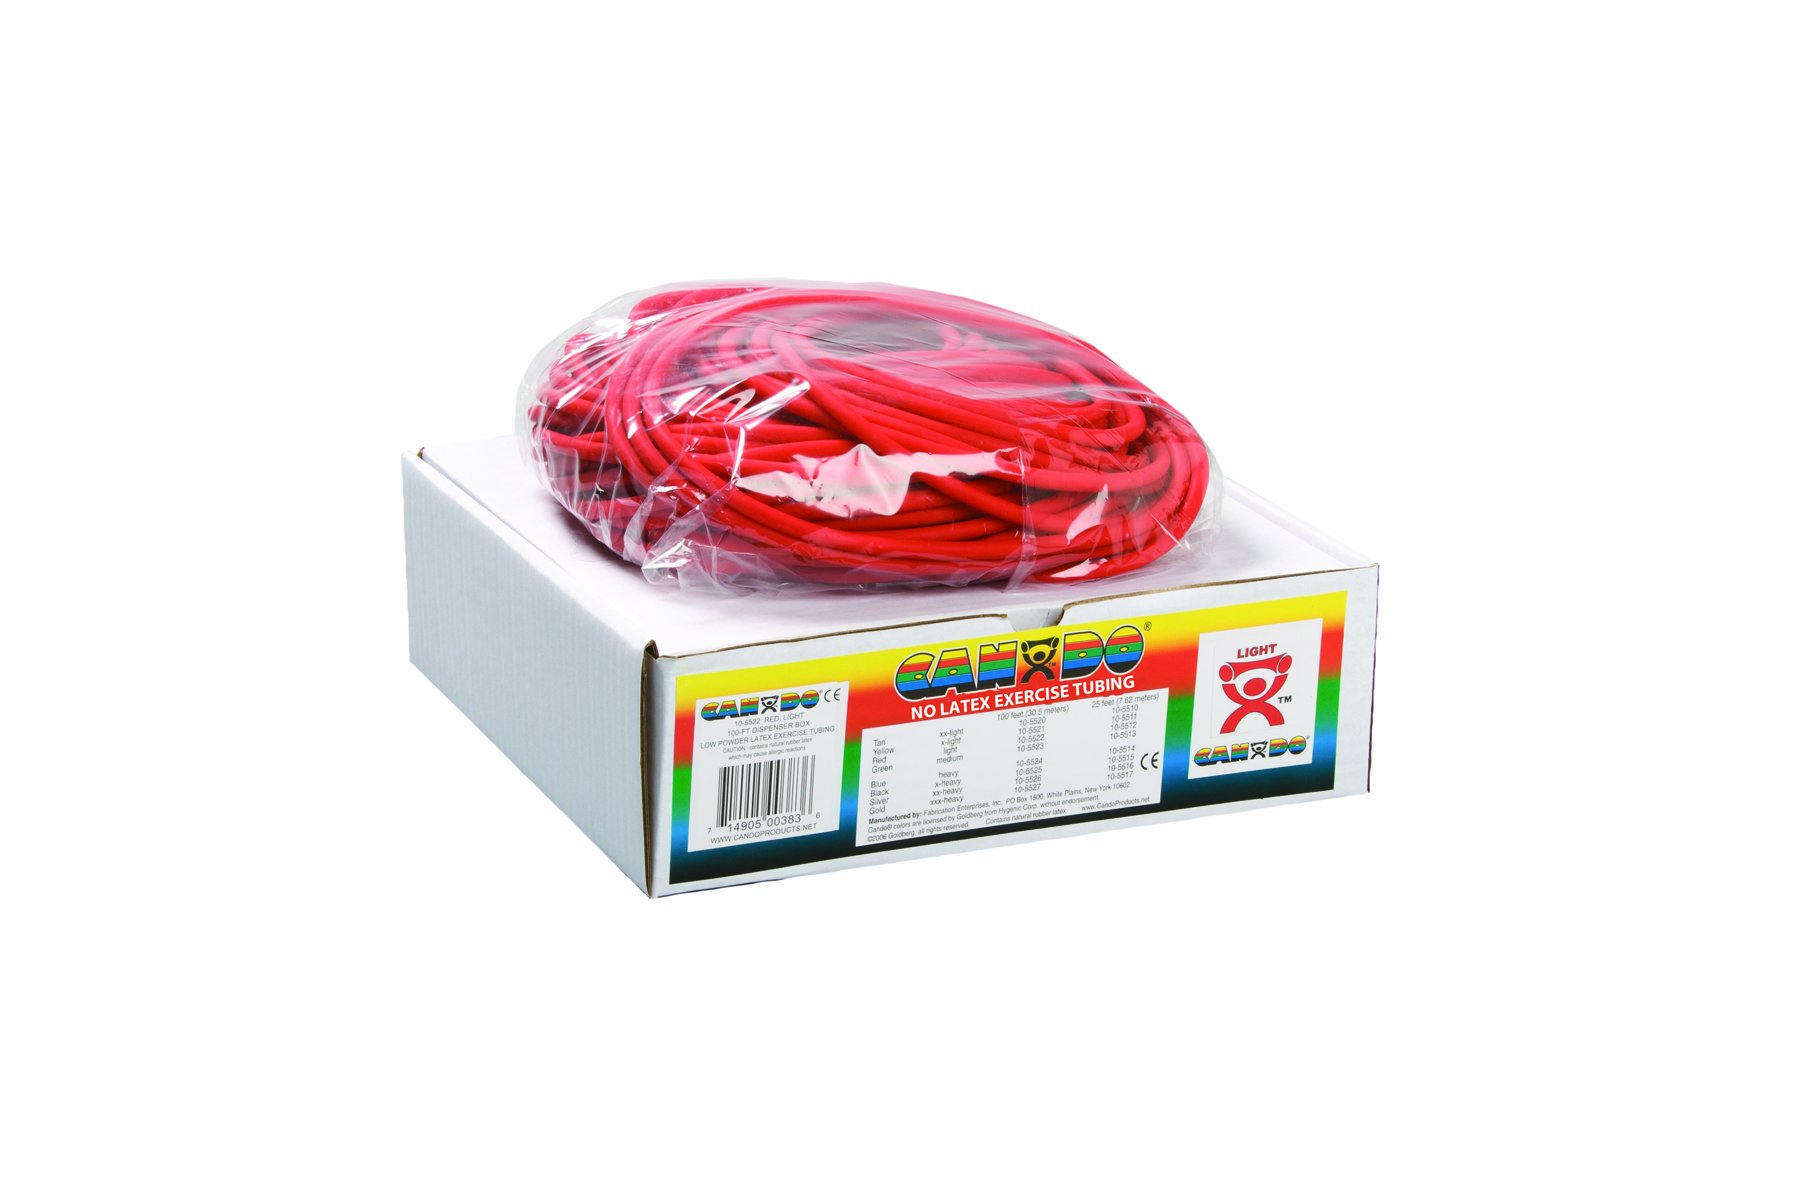 Cando 10-5722 Red Latex-Free Exercise Tubing, Light Resistance, 100' Length by Cando